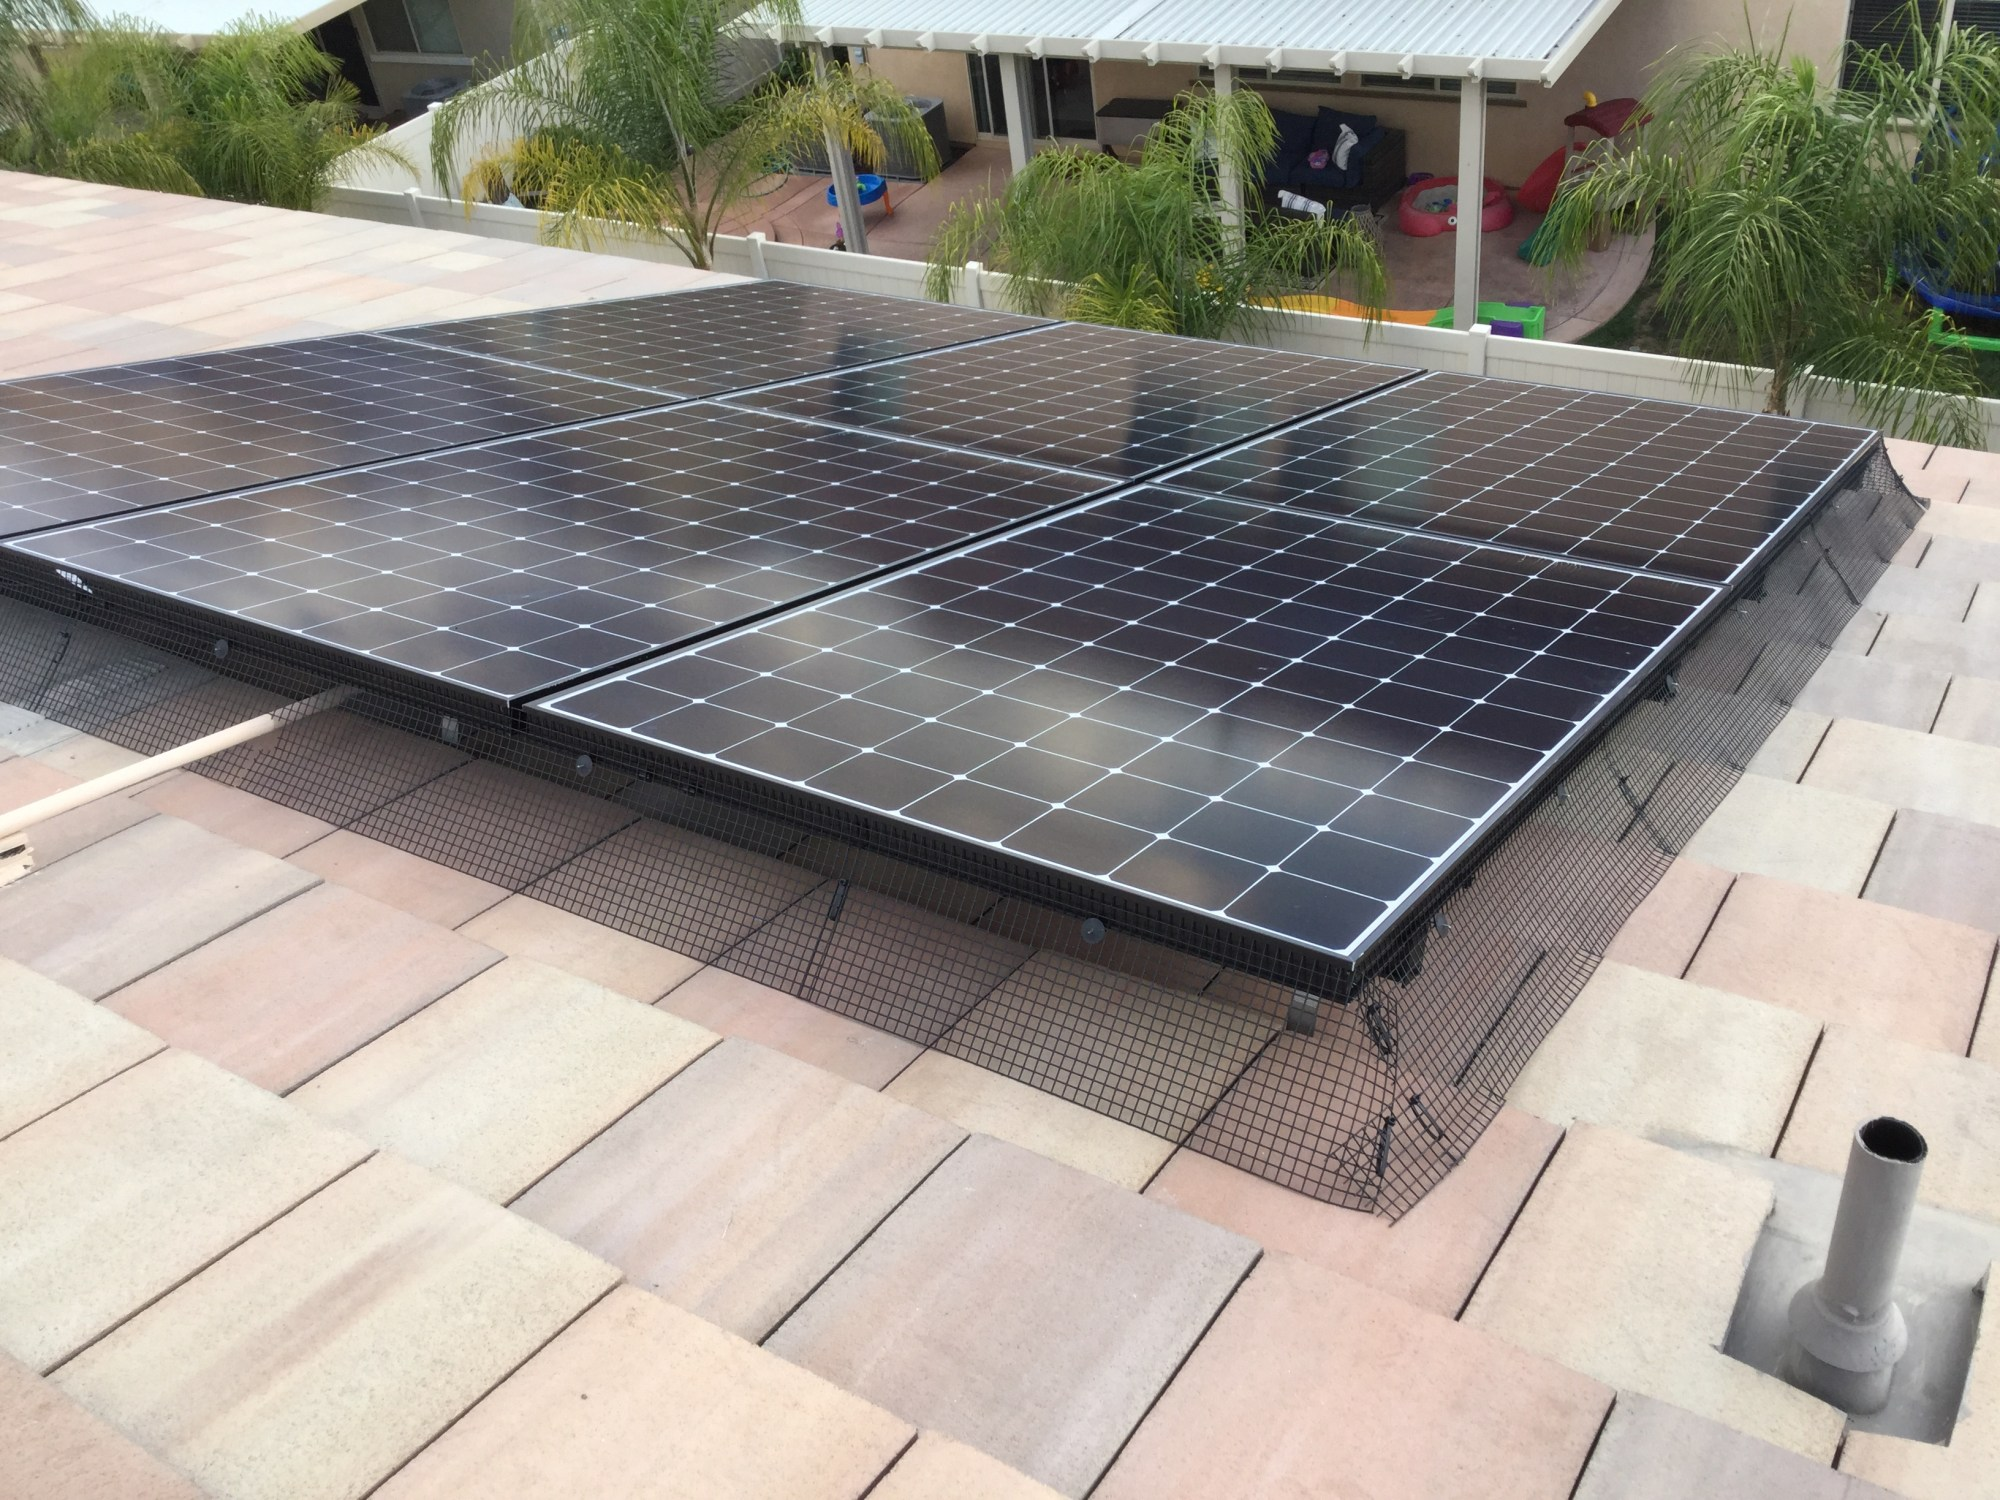 hight resolution of it s not hard to imagine solar power playing a dominant role in the future as the technology grows more efficient and cost effective